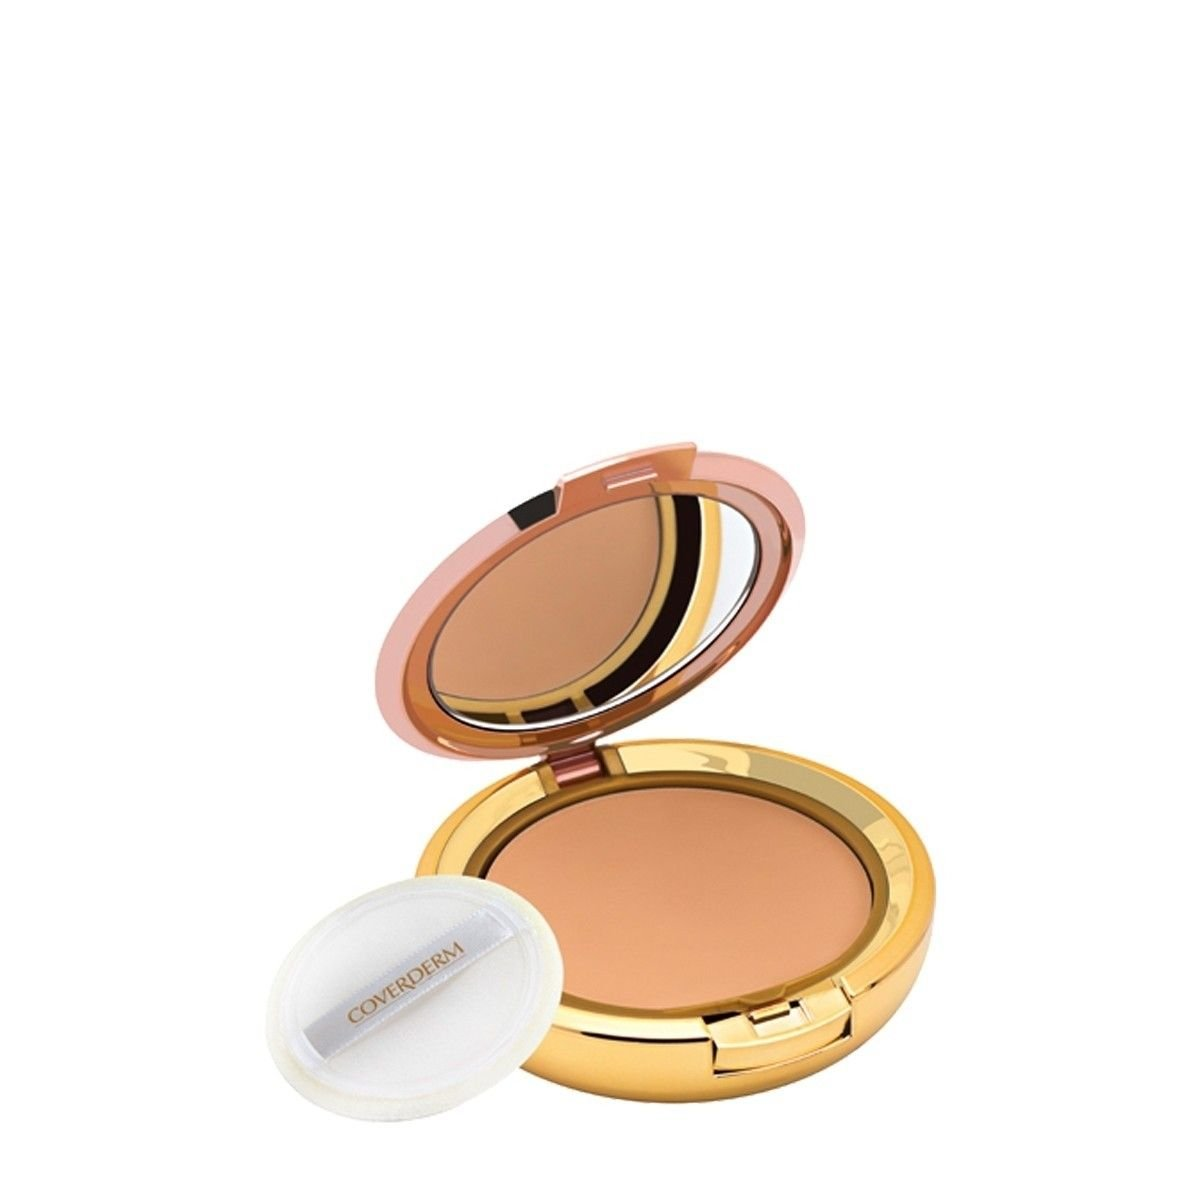 Afbeelding van Coverderm Compact Powder Color Oily 2 Poeder Make up